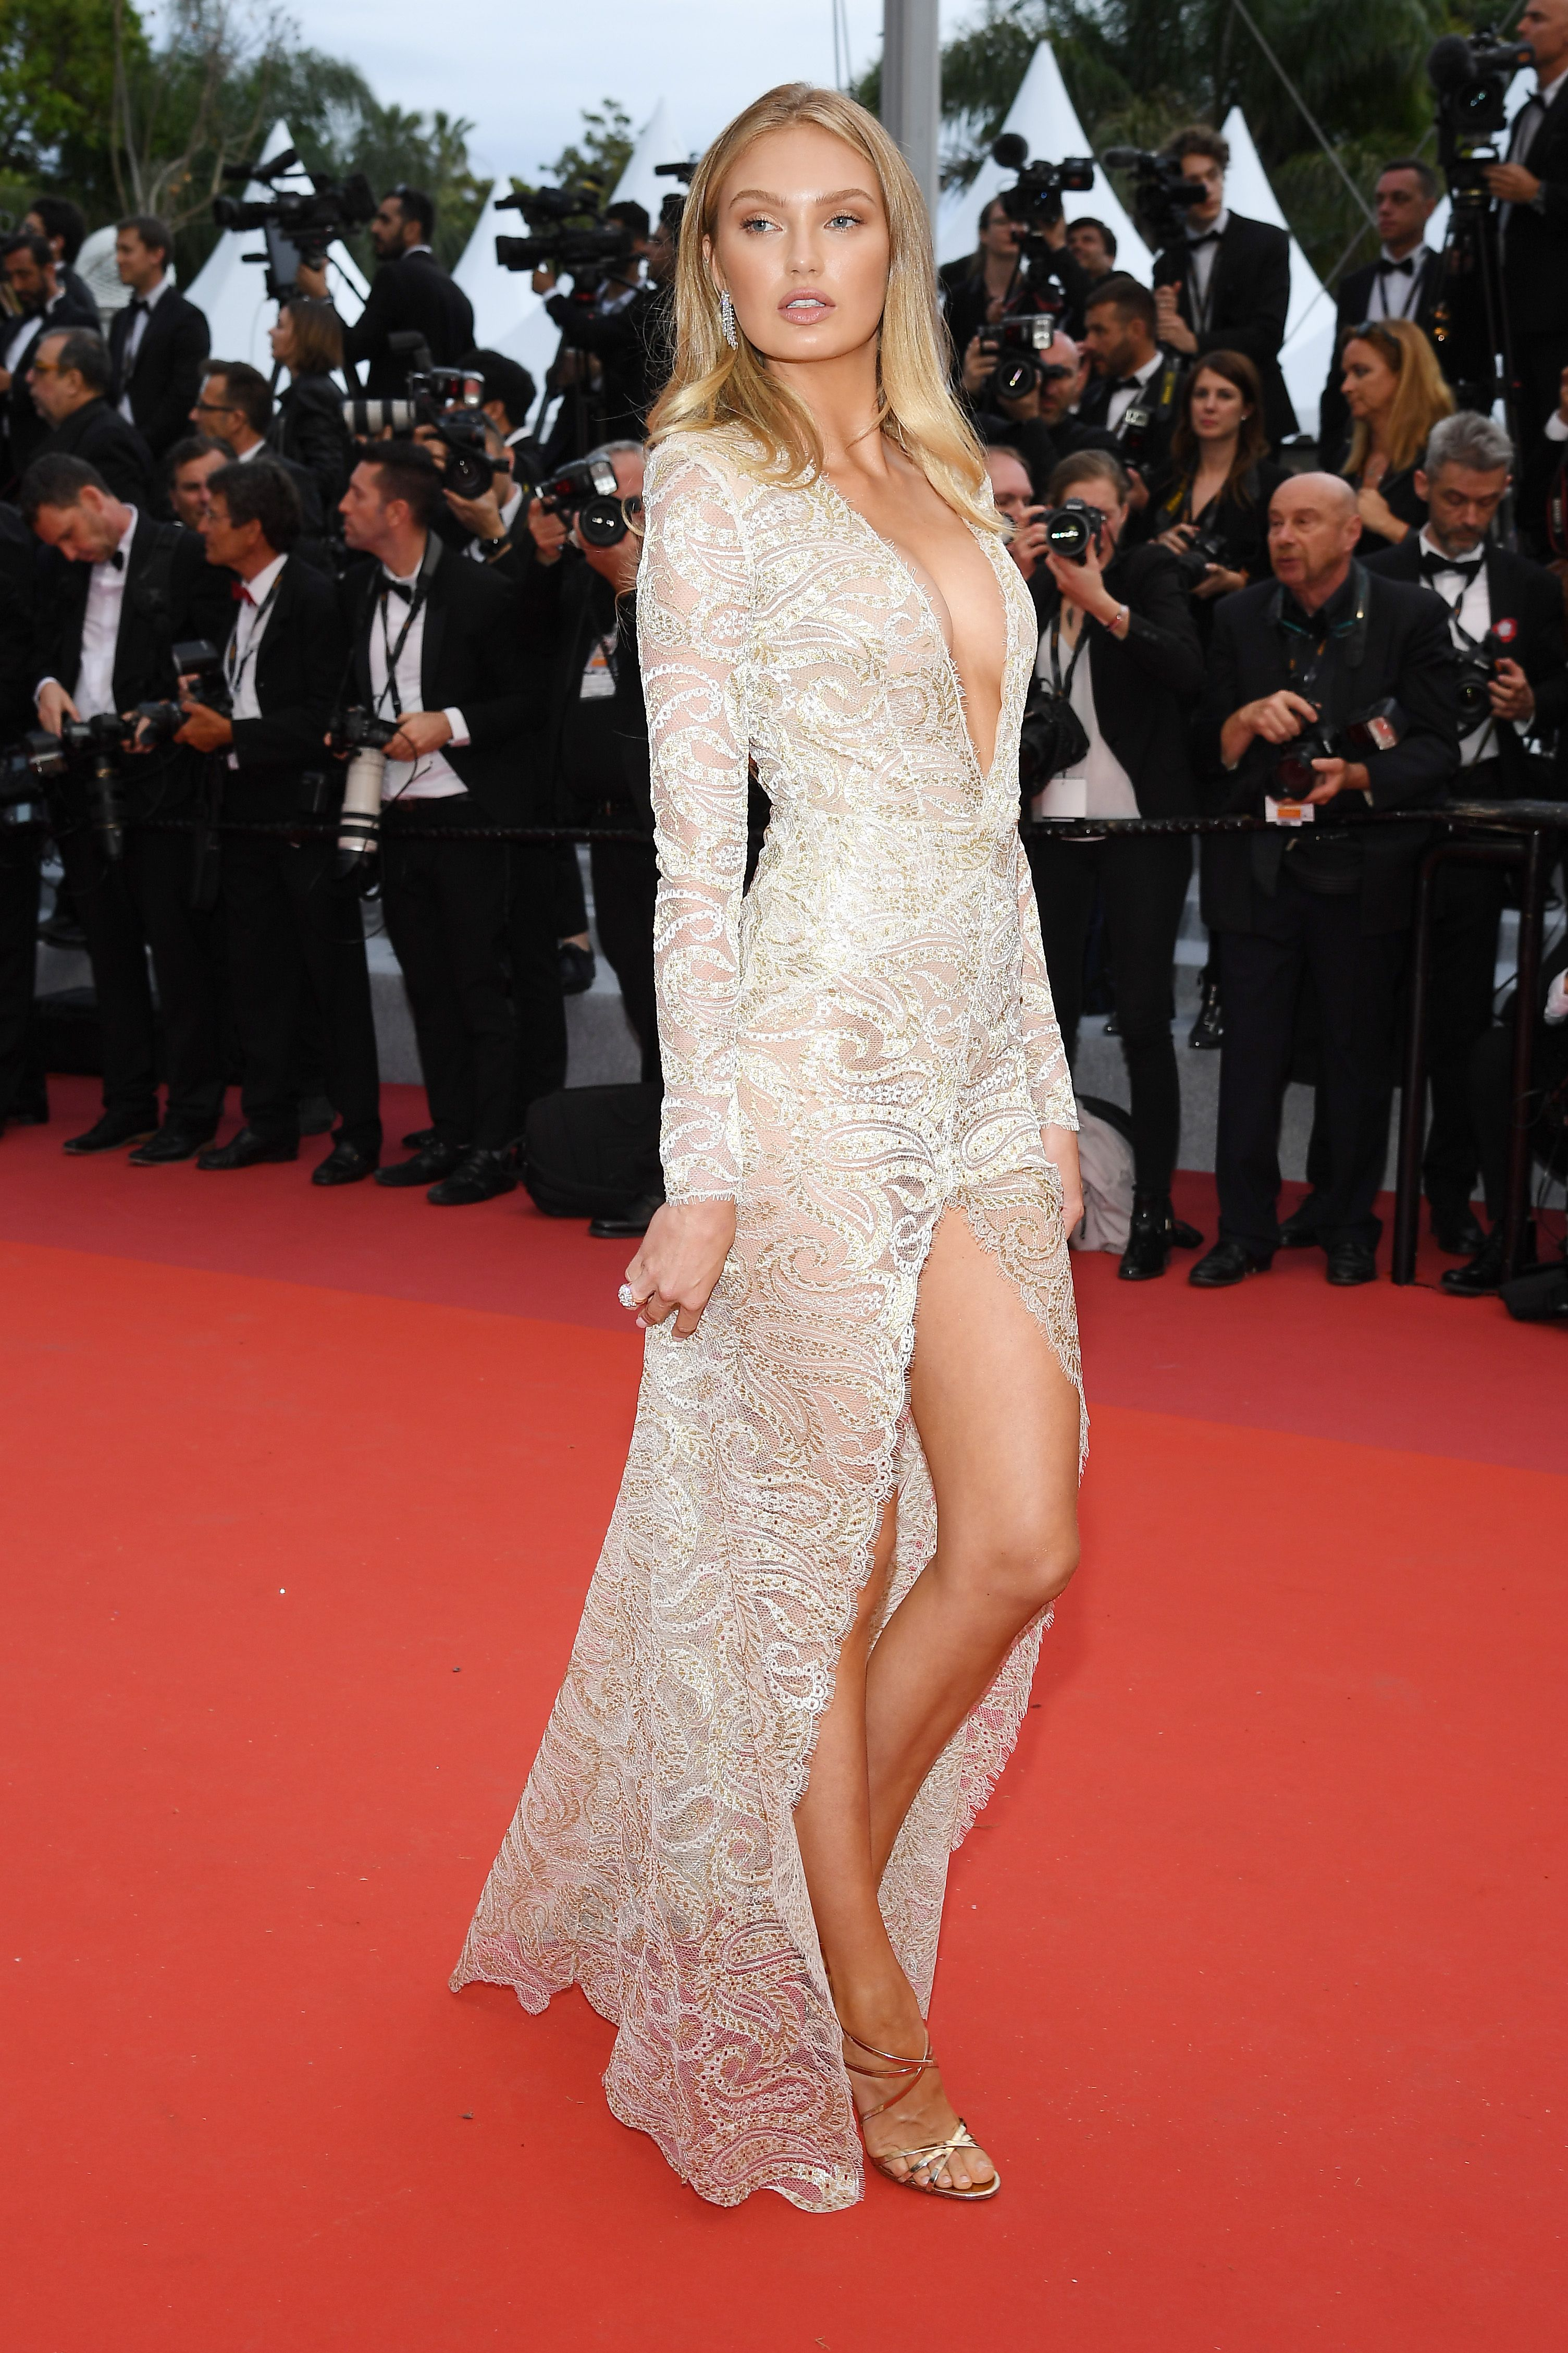 Romee Strijd At the opening ceremony of the Cannes Film Festival and premiere of The Dead Don't Die .